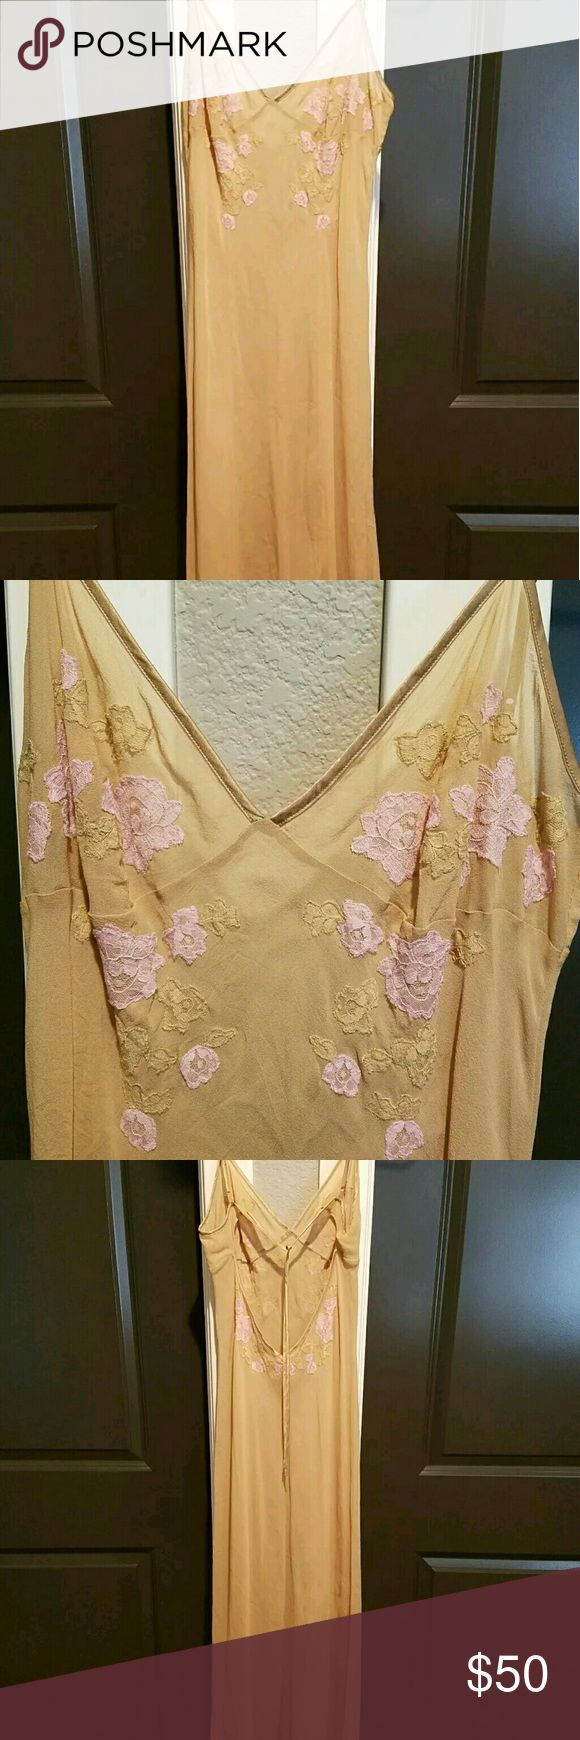 Victoria's Secret 100% Silk Slip Nightgown Neglige Gorgeous 100% silk nightgown in like-new condition!  No flaws whatsoever.  Size medium.  Floral embroidery.  Sheer nude color. Make an offer! Victoria's Secret Intimates & Sleepwear Chemises & Slips